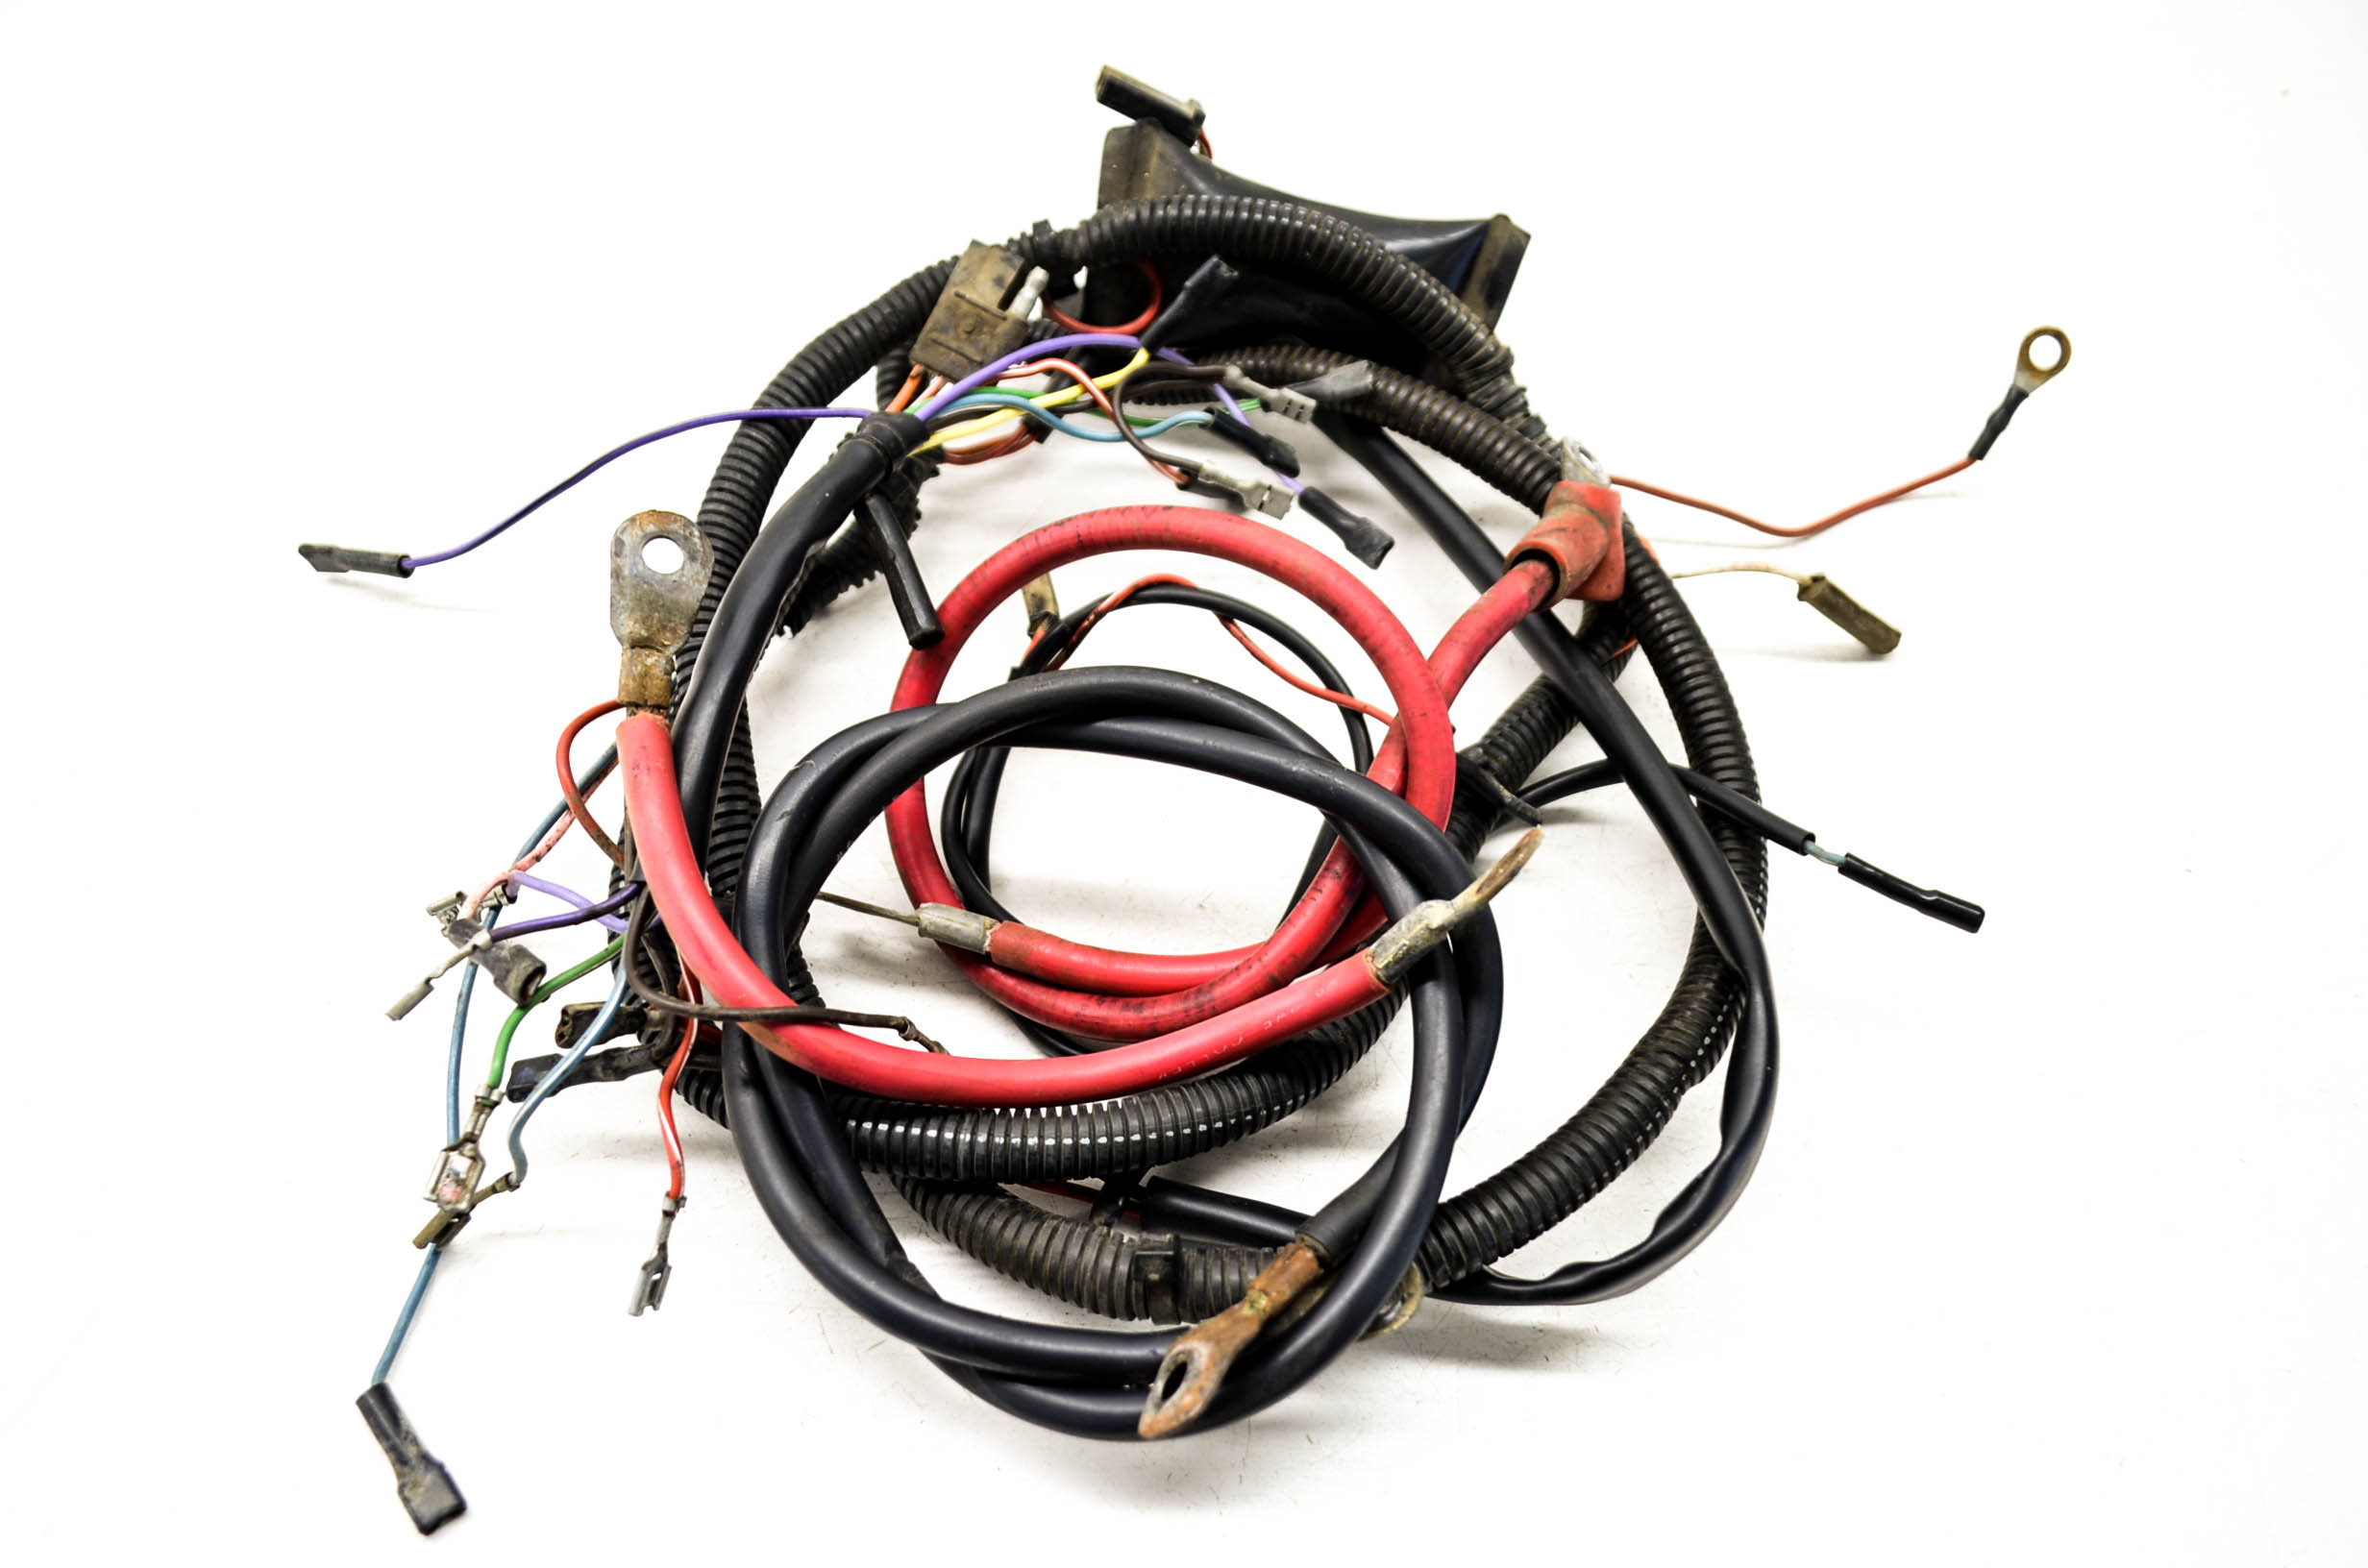 97 Polaris Scrambler 500 4x4 Wire Harness Electrical Wiring